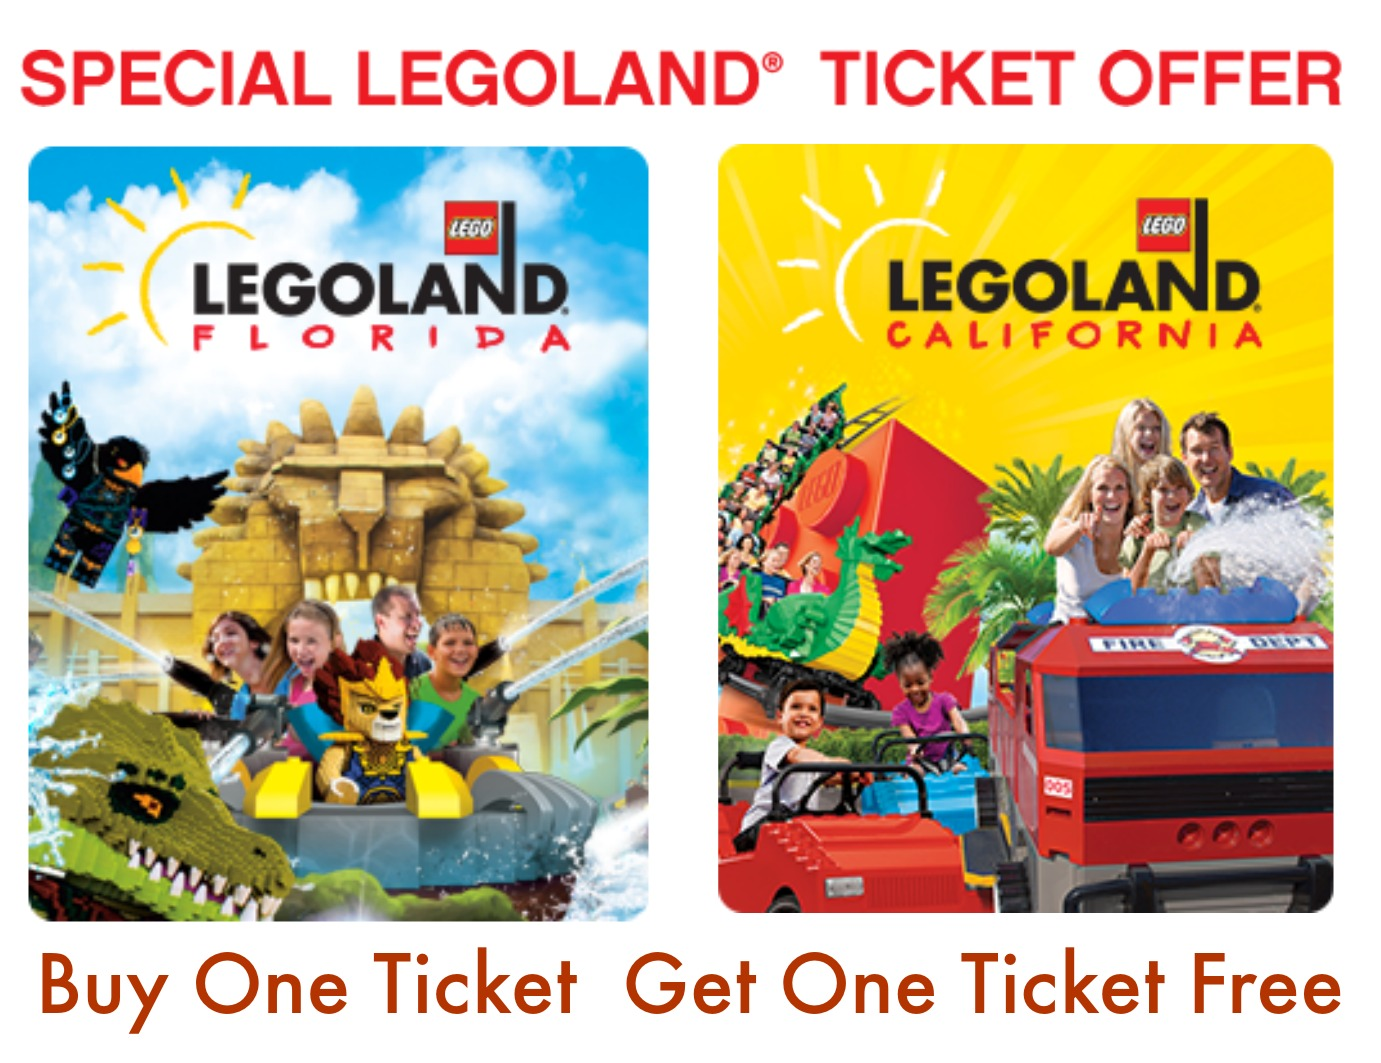 You always get best deals from Legoland, now get Up to 50% Off Admission with Go San Diego Card.